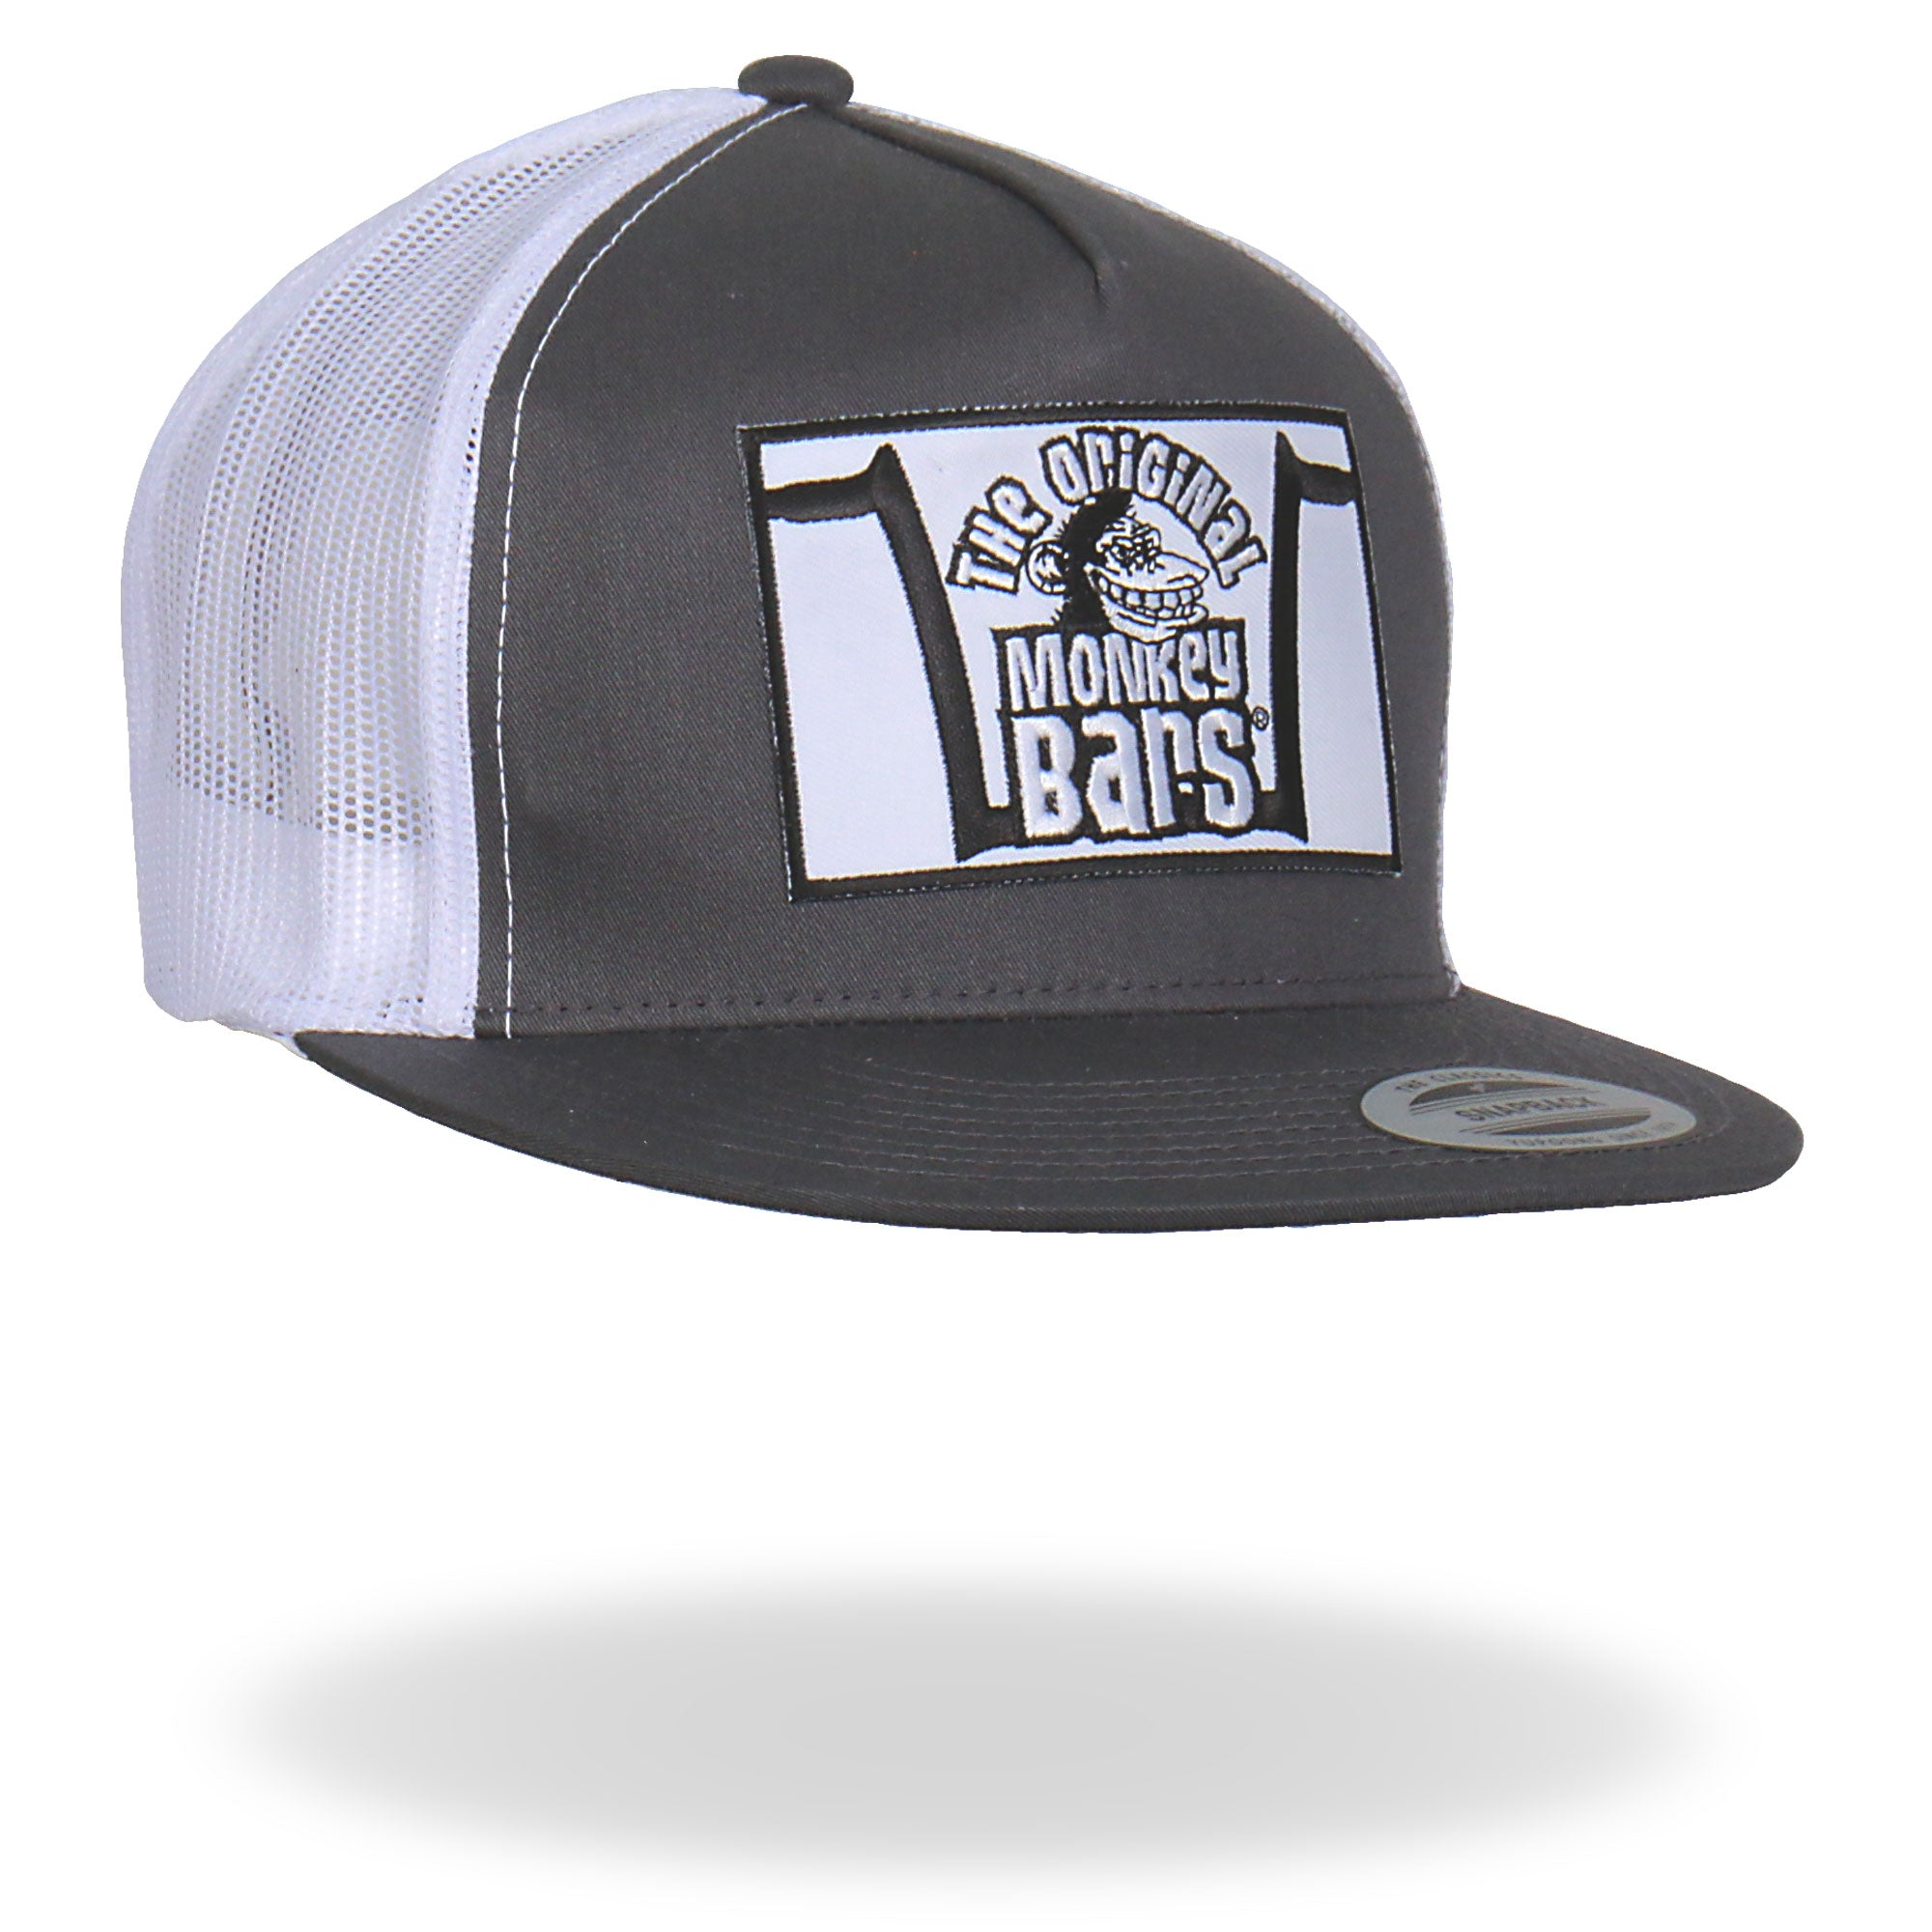 Official Paul Yaffes Monkey Bars Hat Gray Snapback